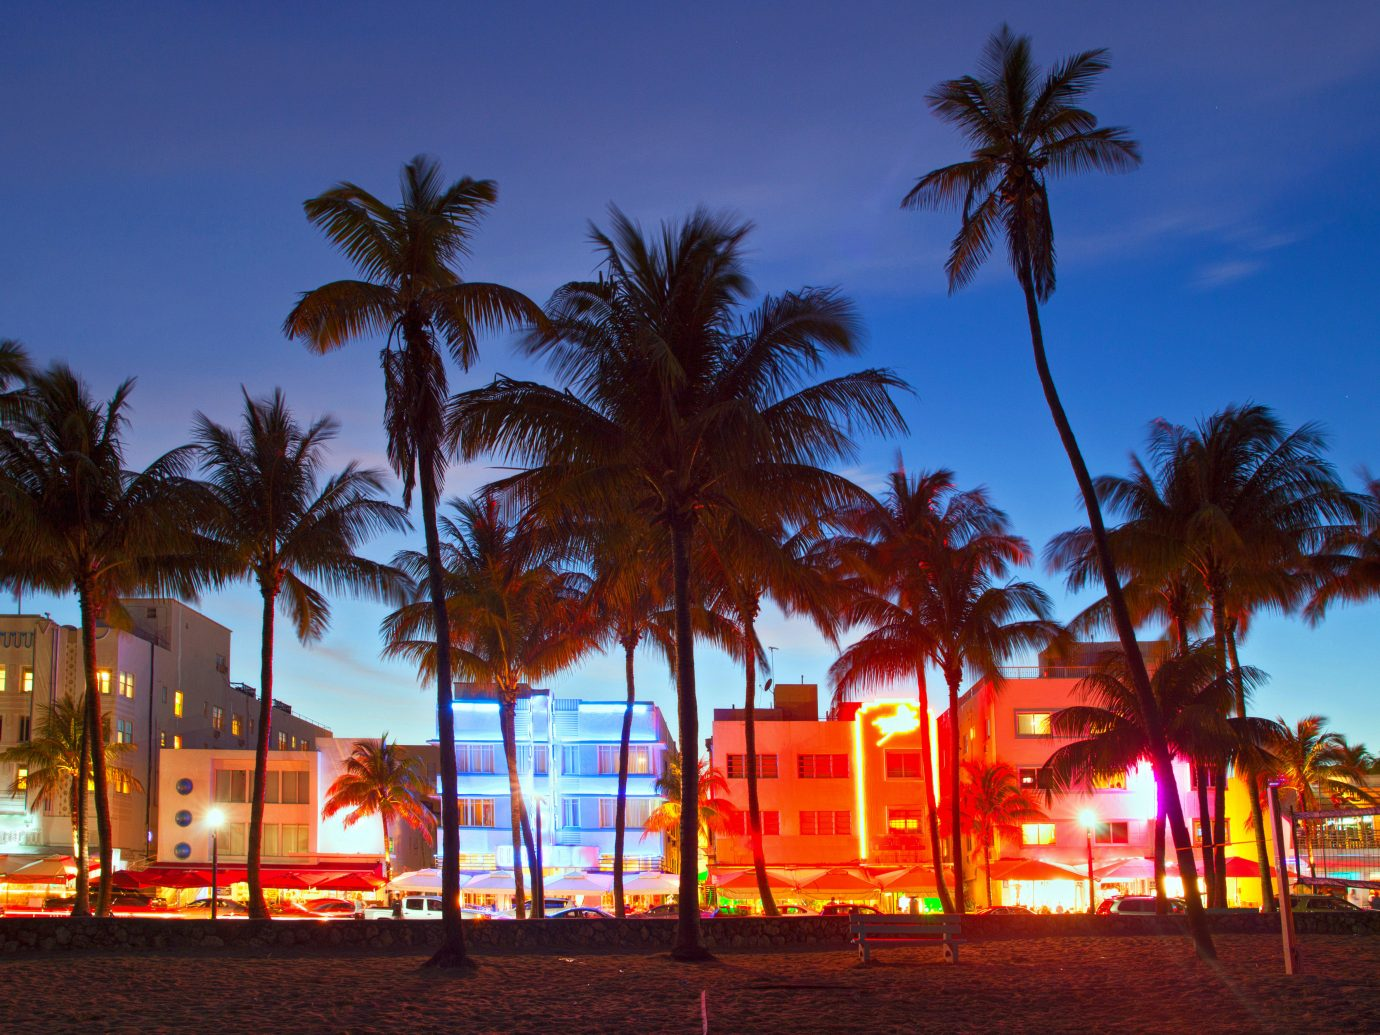 Miami beach strip at night